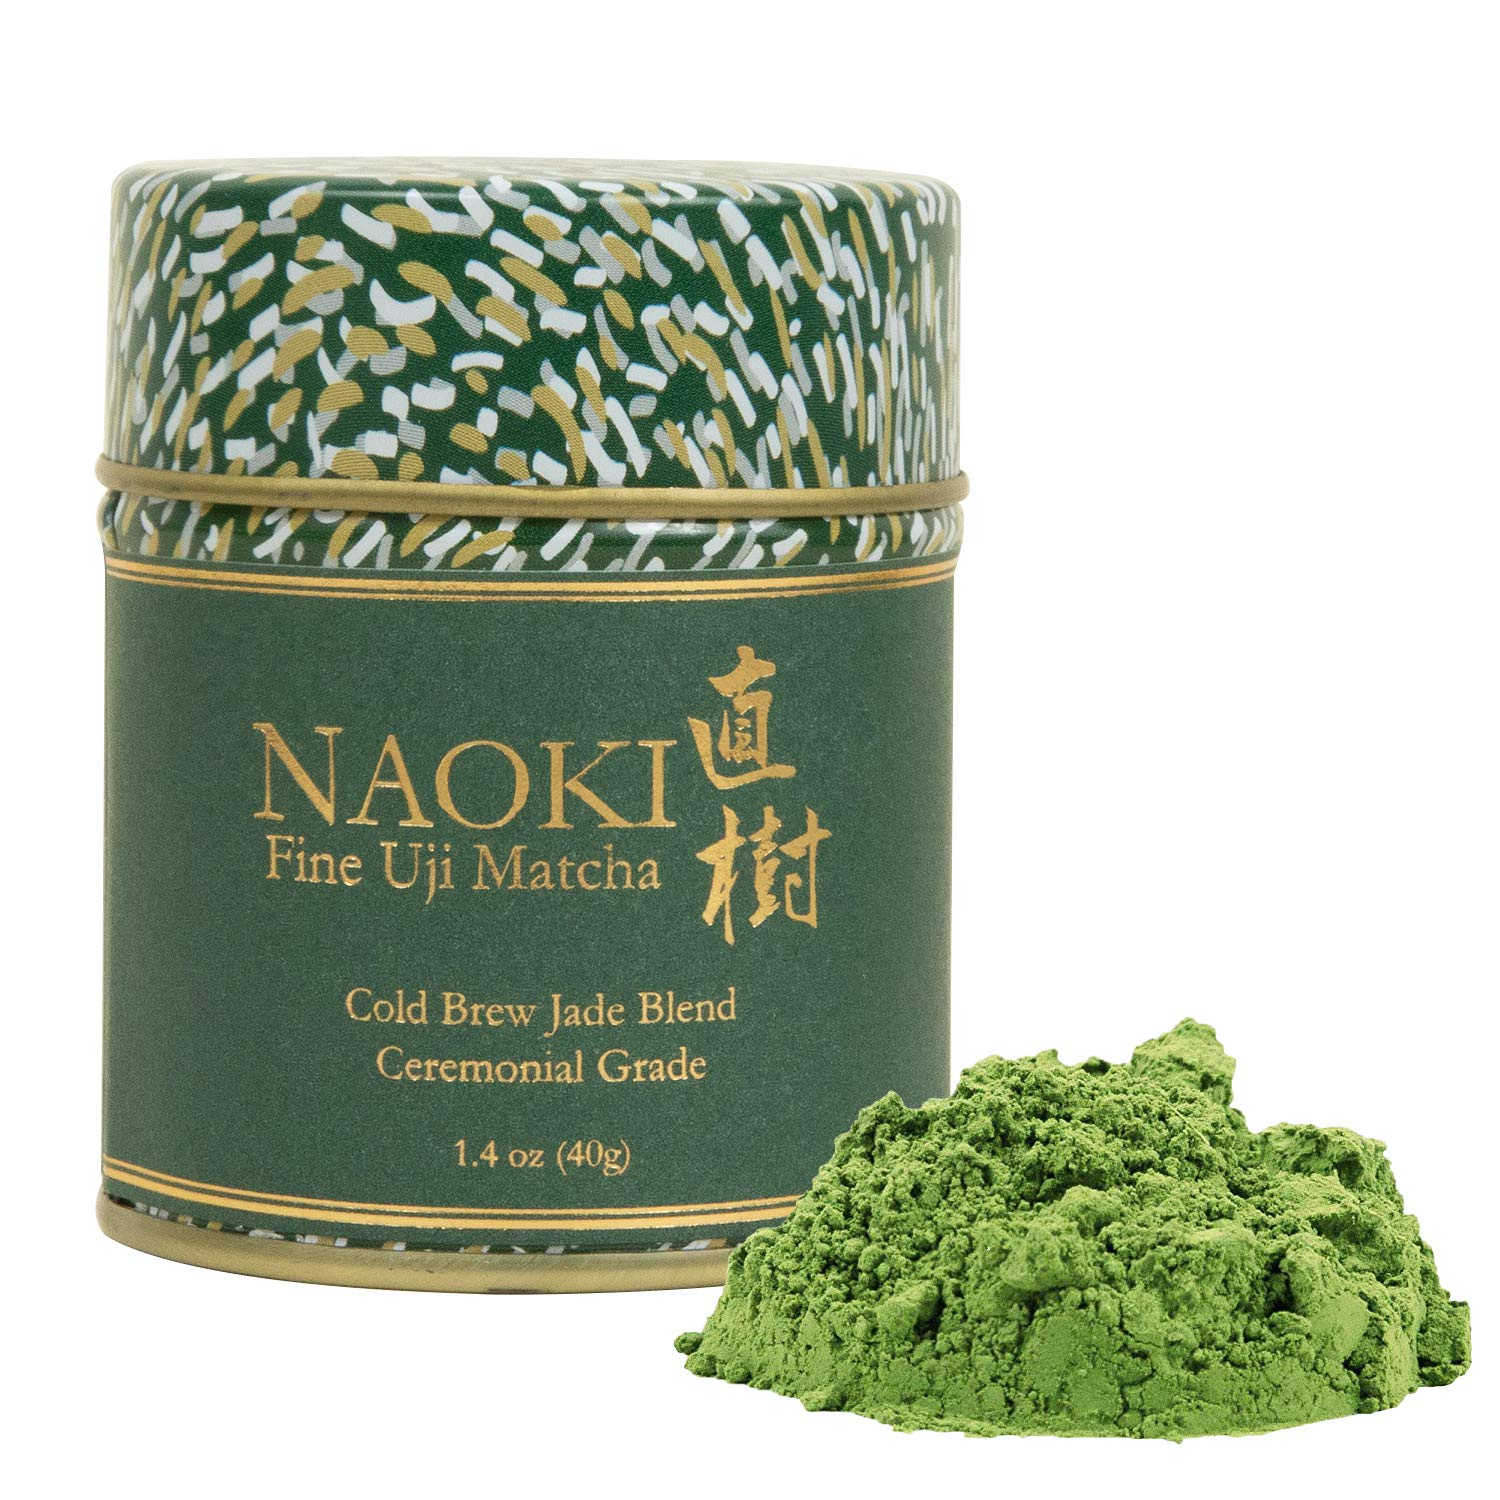 Naoki Matcha (Cold Brew Jade Blend, 40g / 1.4oz) Authentic Japanese Matcha Green Tea Powder Ceremonial Grade from Wazuka, Uji Kyoto, Japan